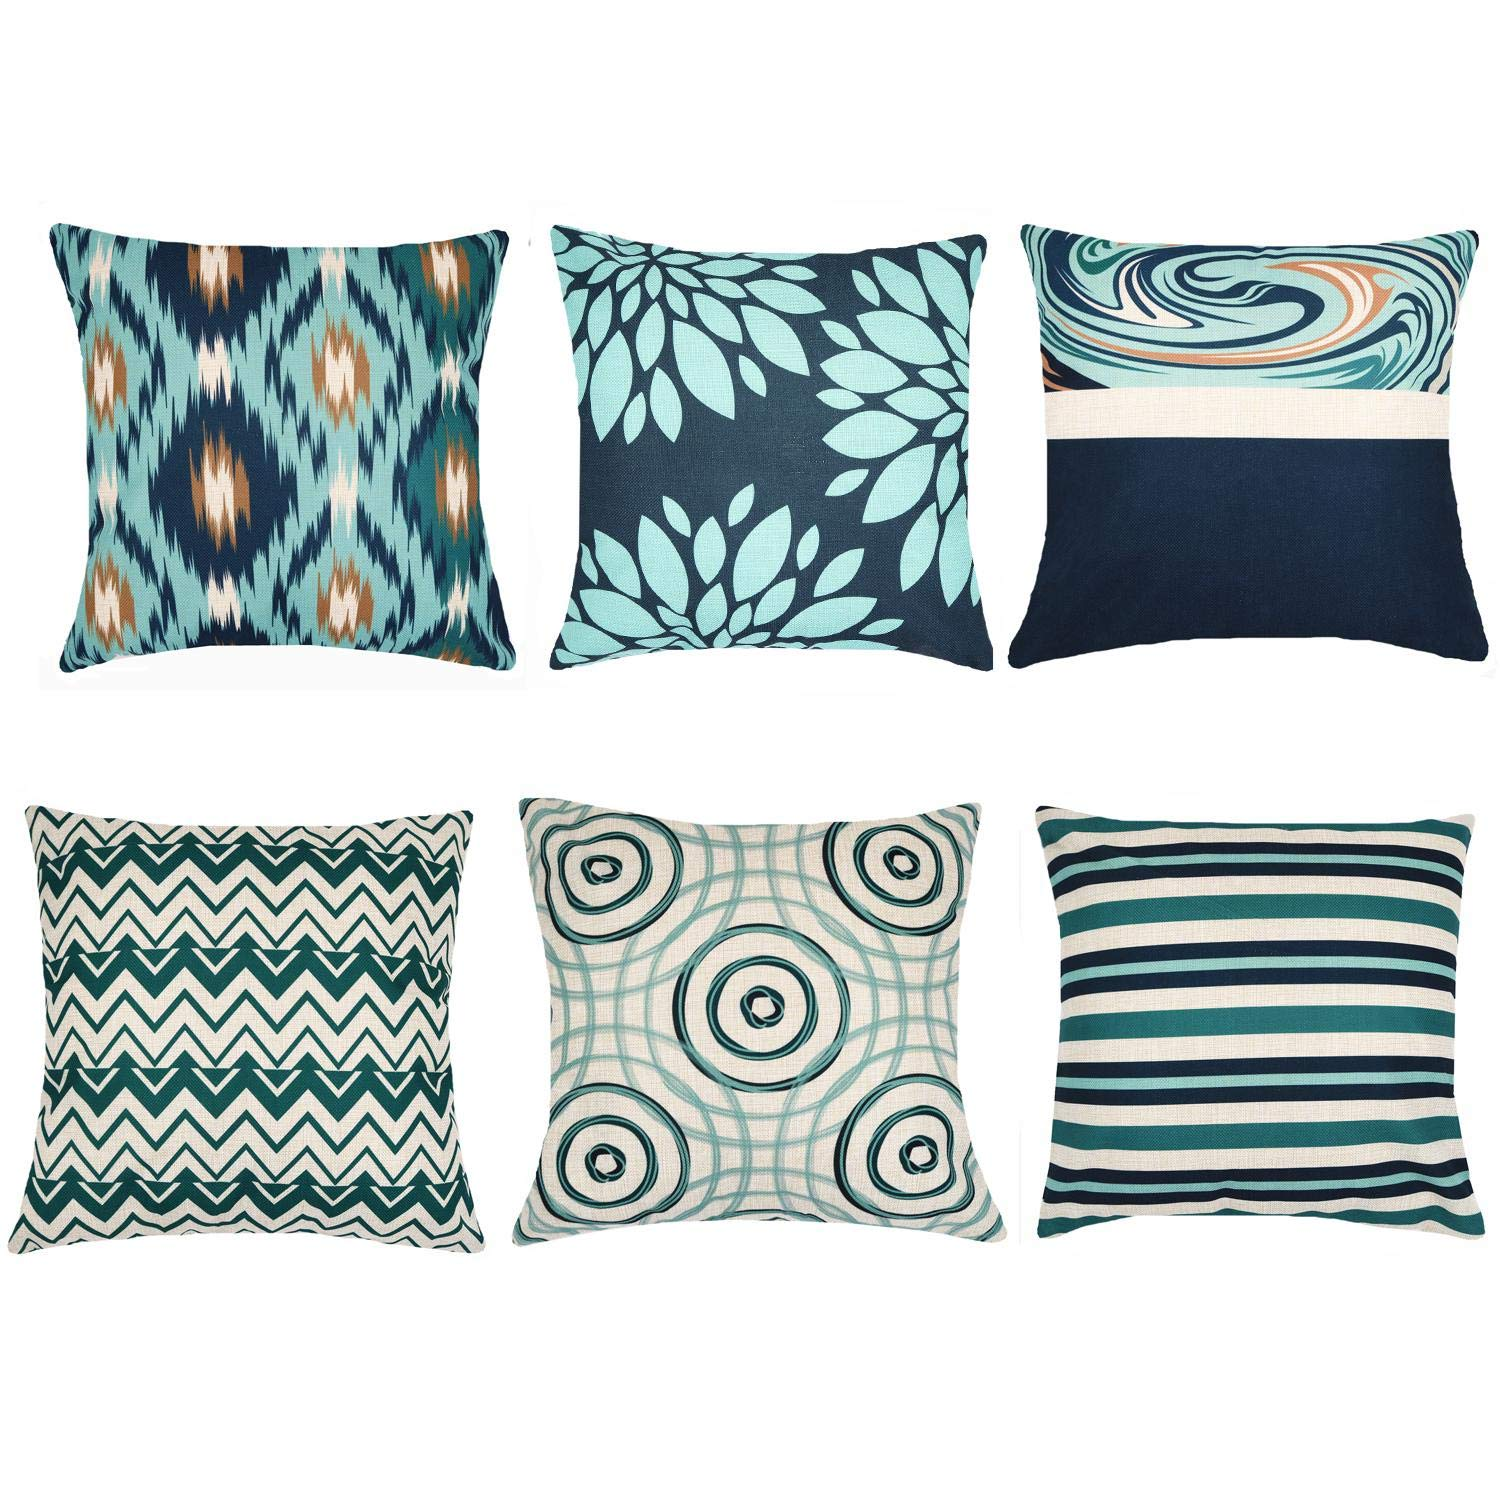 Decorative Throw Pillow Covers 18 x 18 Inch Double Side Design, ZUEXT Set of 6 Cotton Linen Indoor Outdoor Pillow Case Cushion Cover for Car Sofa Home Decor (Solid Dark Navy Teal Beige, Mix and Match)